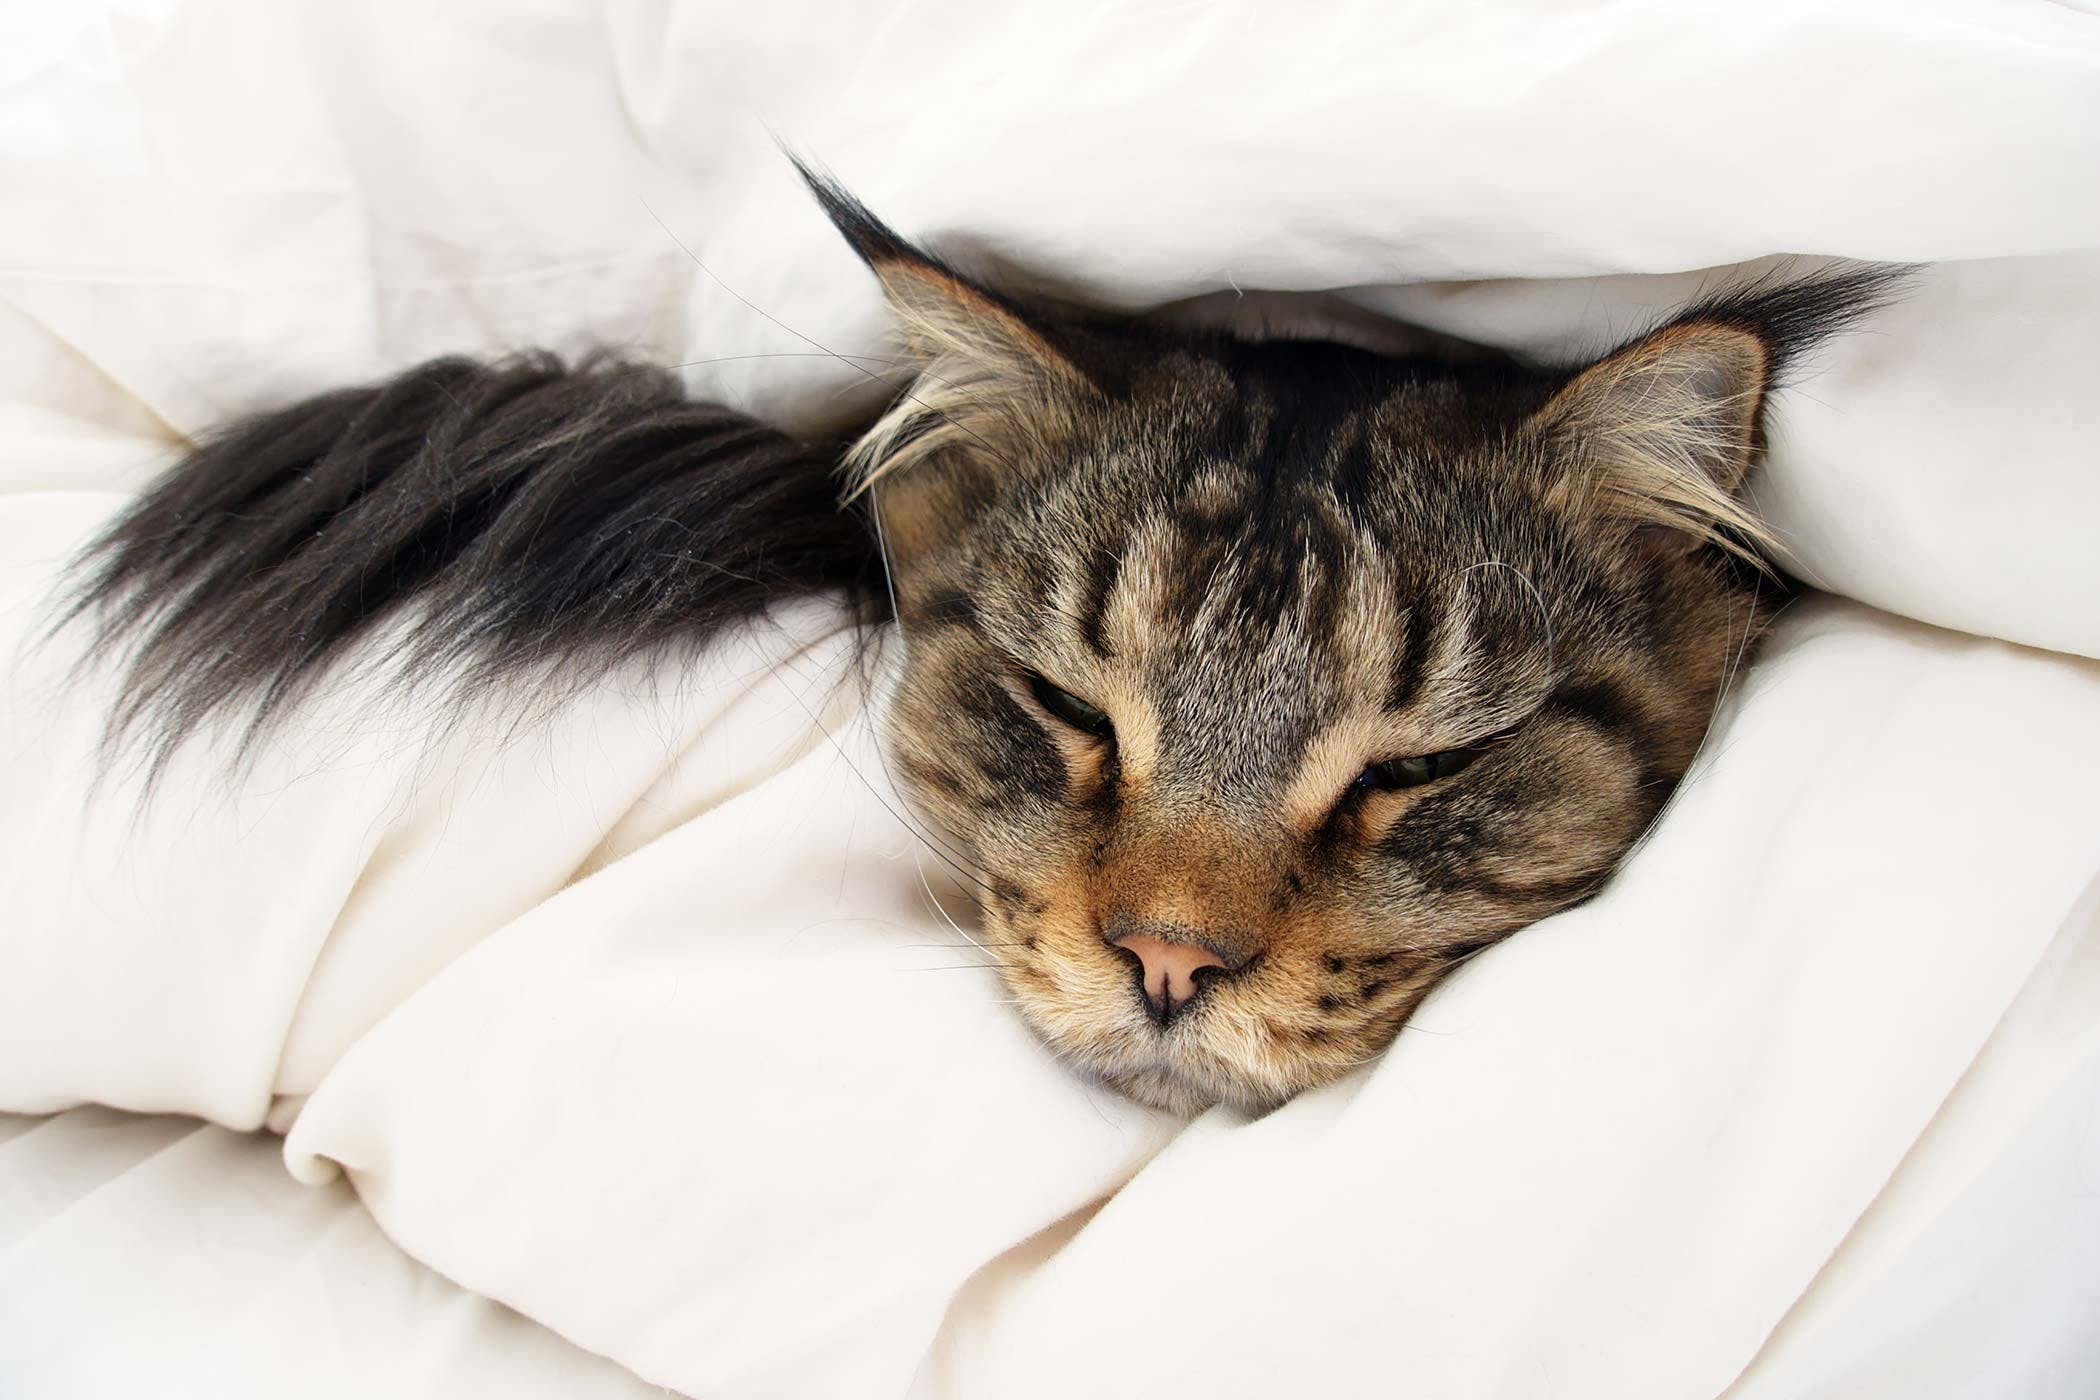 Epileptic Seizures In Cats Symptoms Causes Diagnosis Treatment